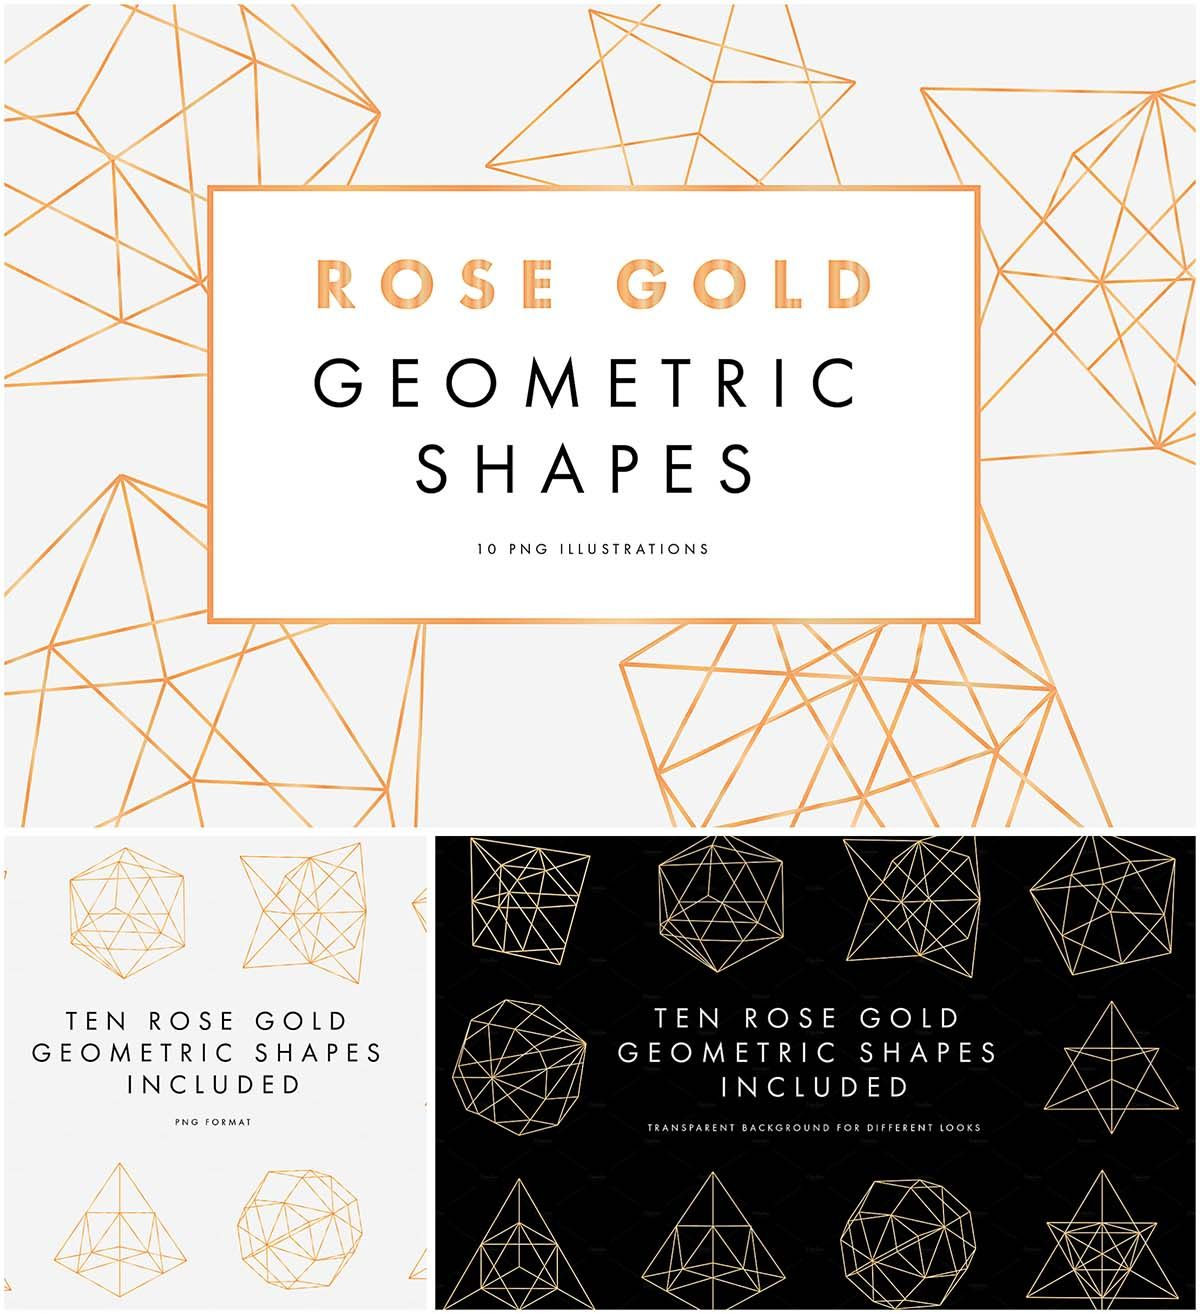 Rose Gold Geometric Shapes Collection Free Download Geometric Shapes Rose Gold Logo Geometric